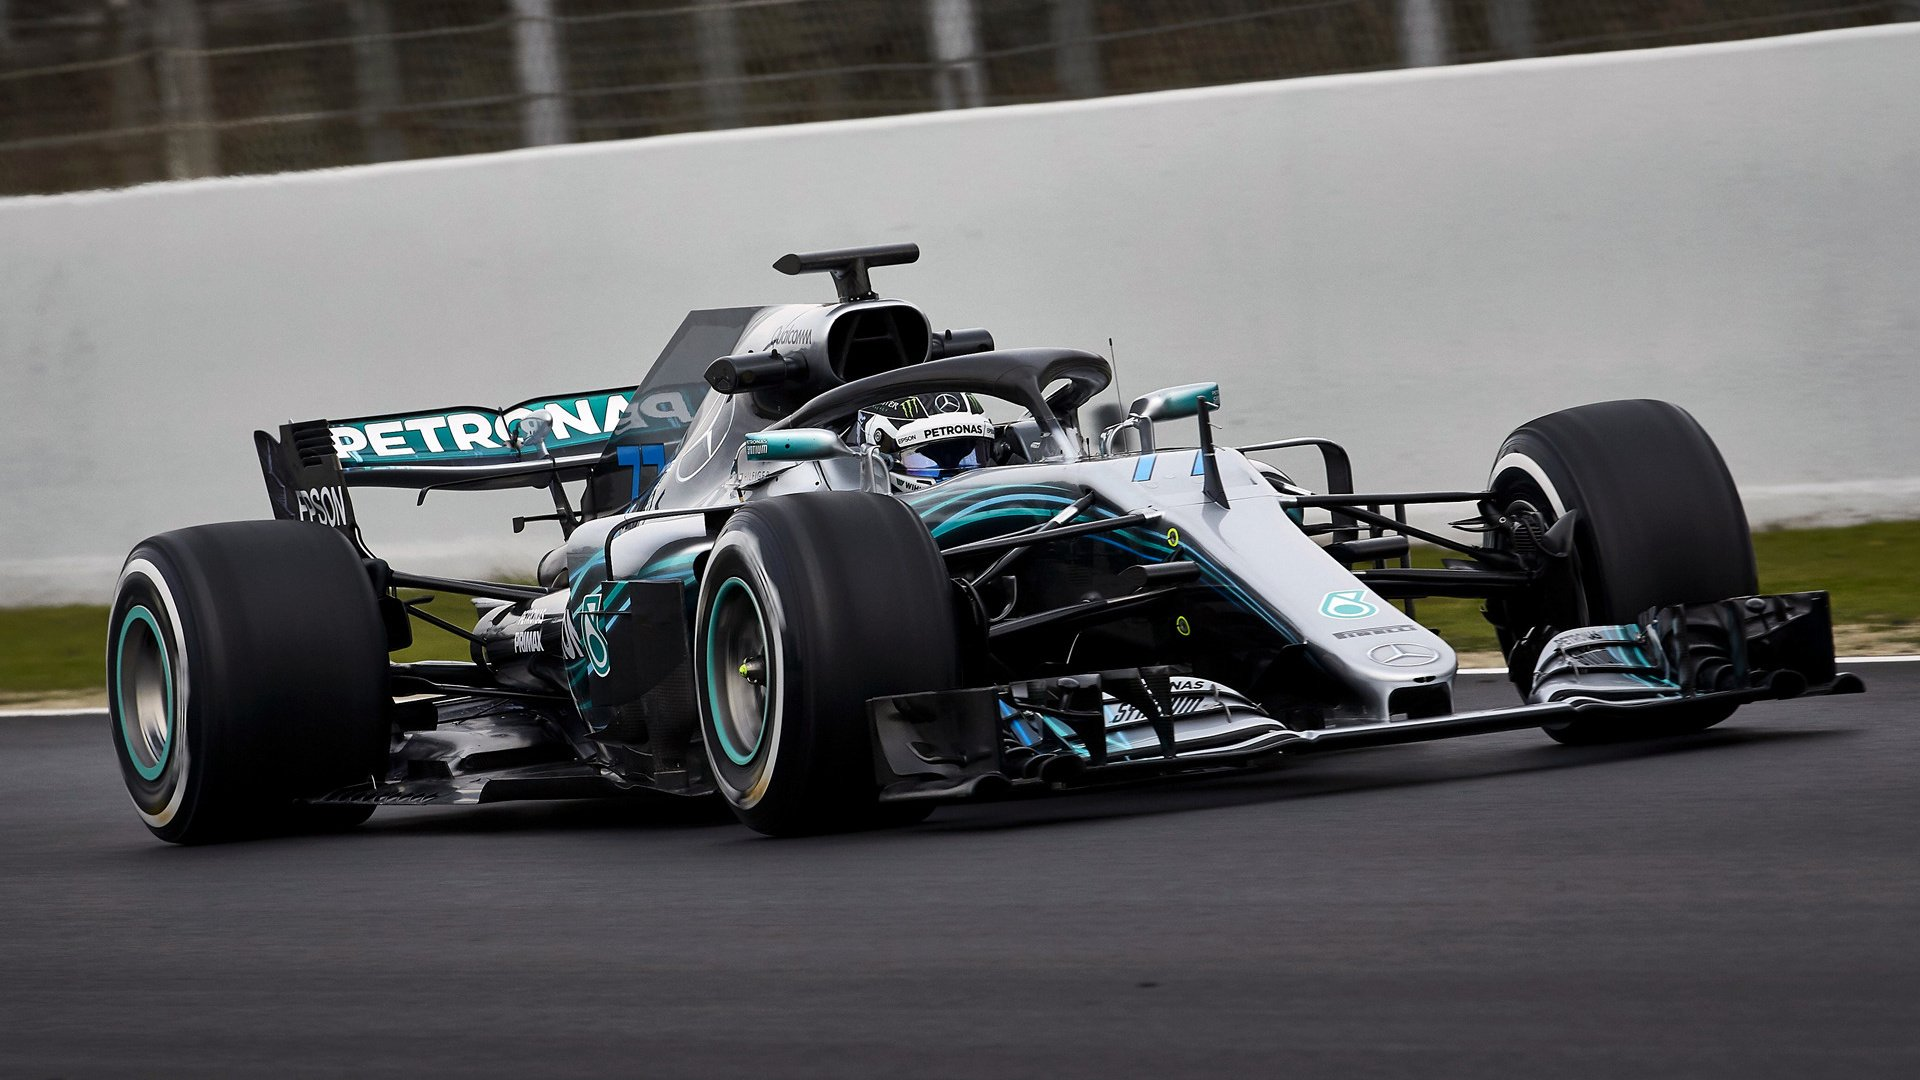 Mercedes f1 wallpaper 1280x800